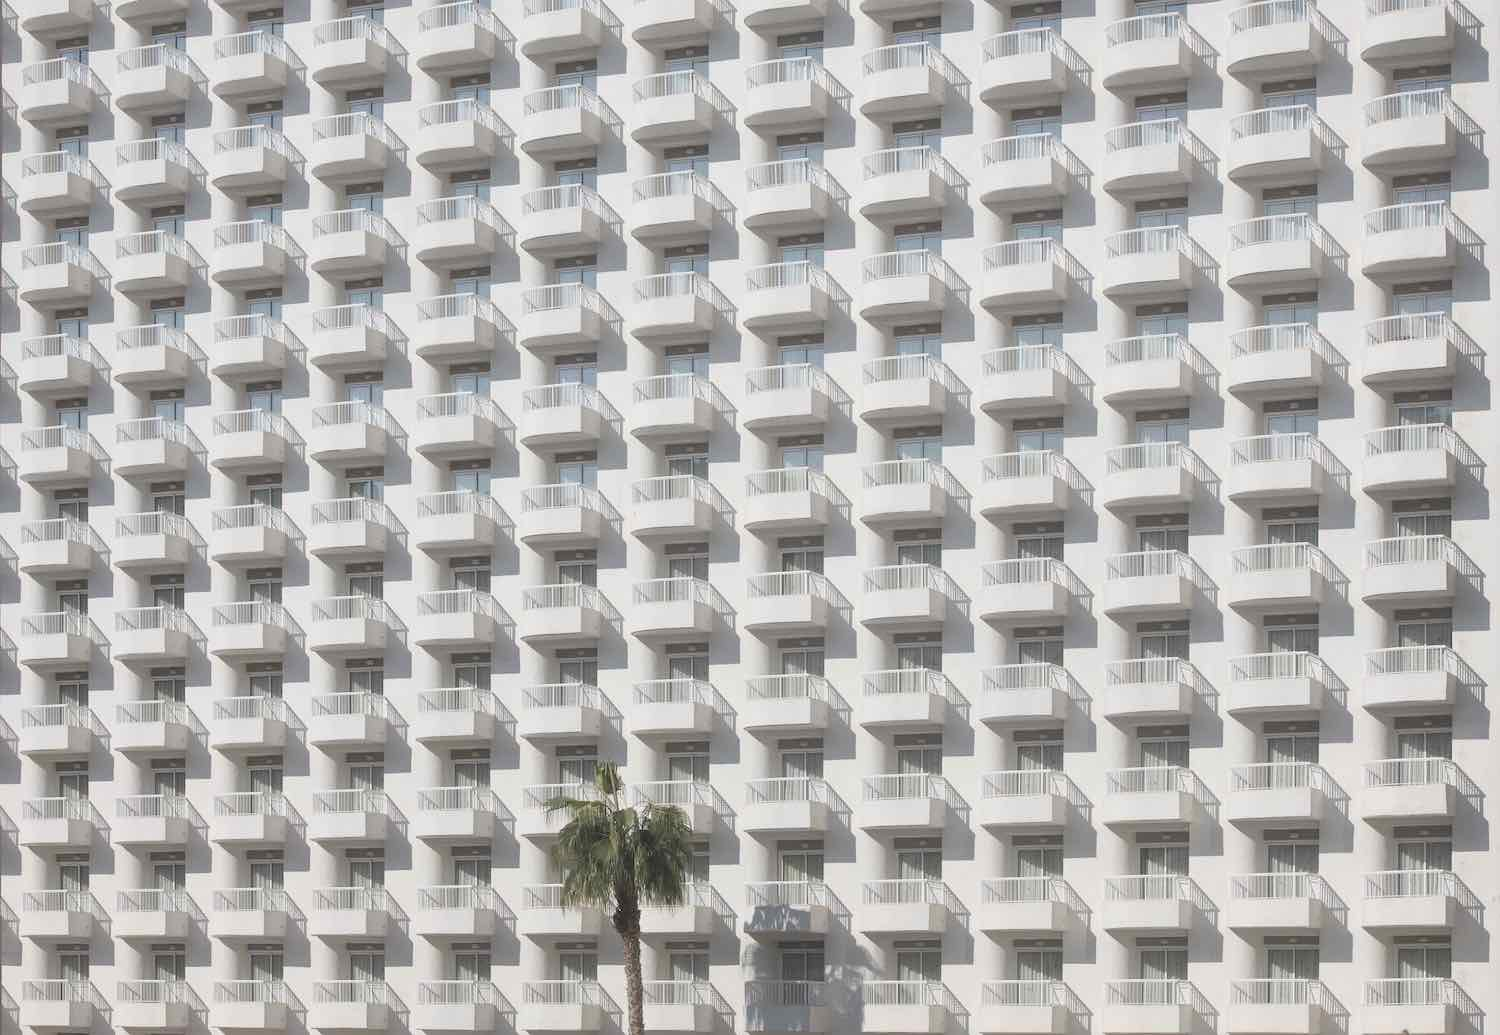 BENIDORM EMPTY HOTELS photo essay by Manuel Alvarez Diestro - Photo by Manuel Alvarez Diestro.